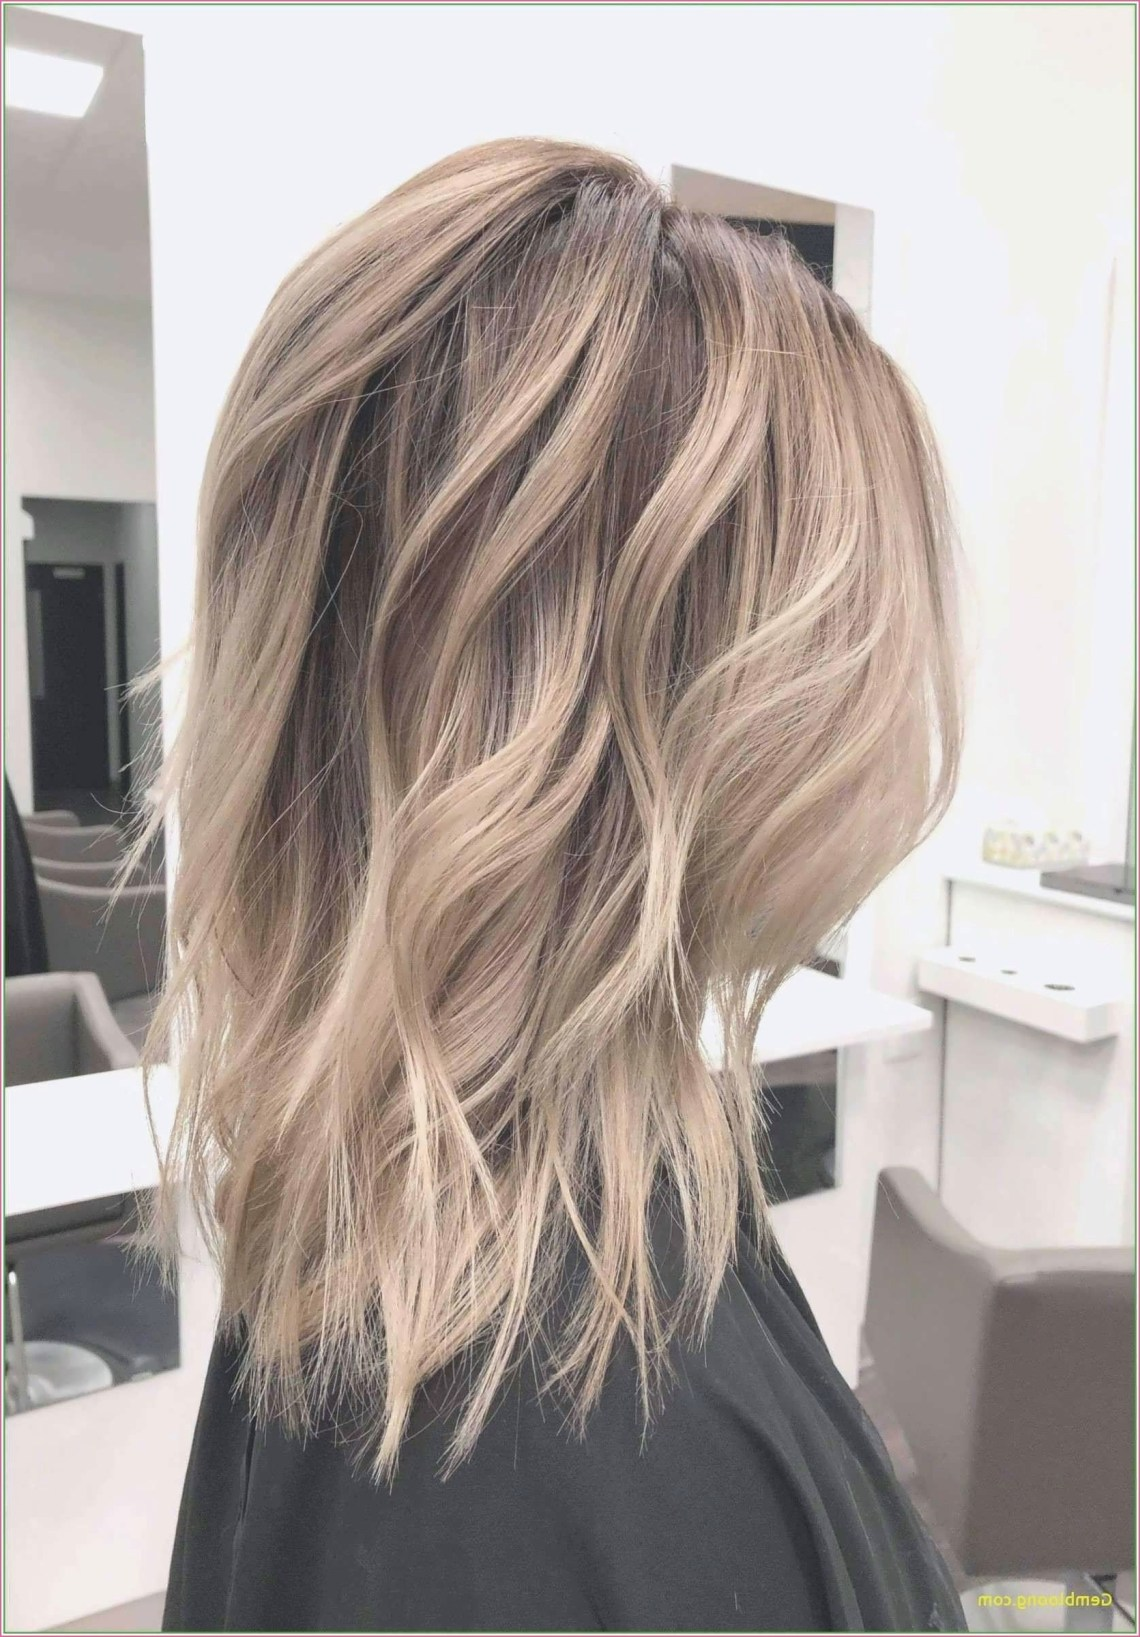 Pin On Frisuren Mittellanges Haar 40+ Amazing Low Maintenance Medium Length Hairstyles